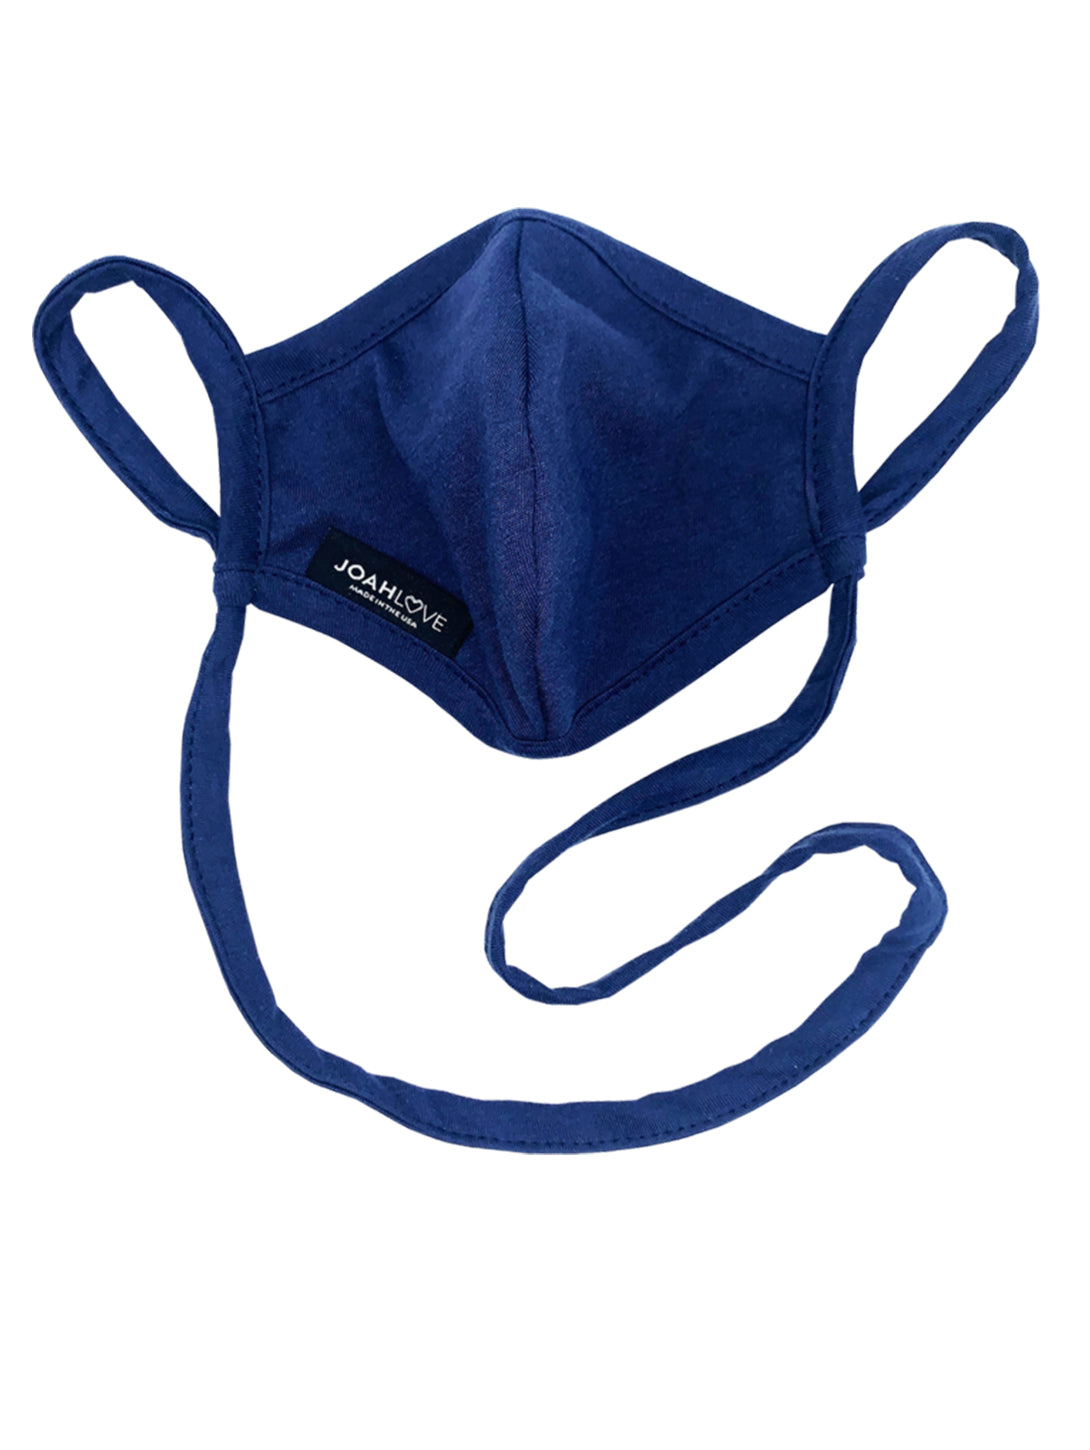 Infinity Strap Filter Pocket Mask - Navy-JOAH LOVE-Over the Rainbow